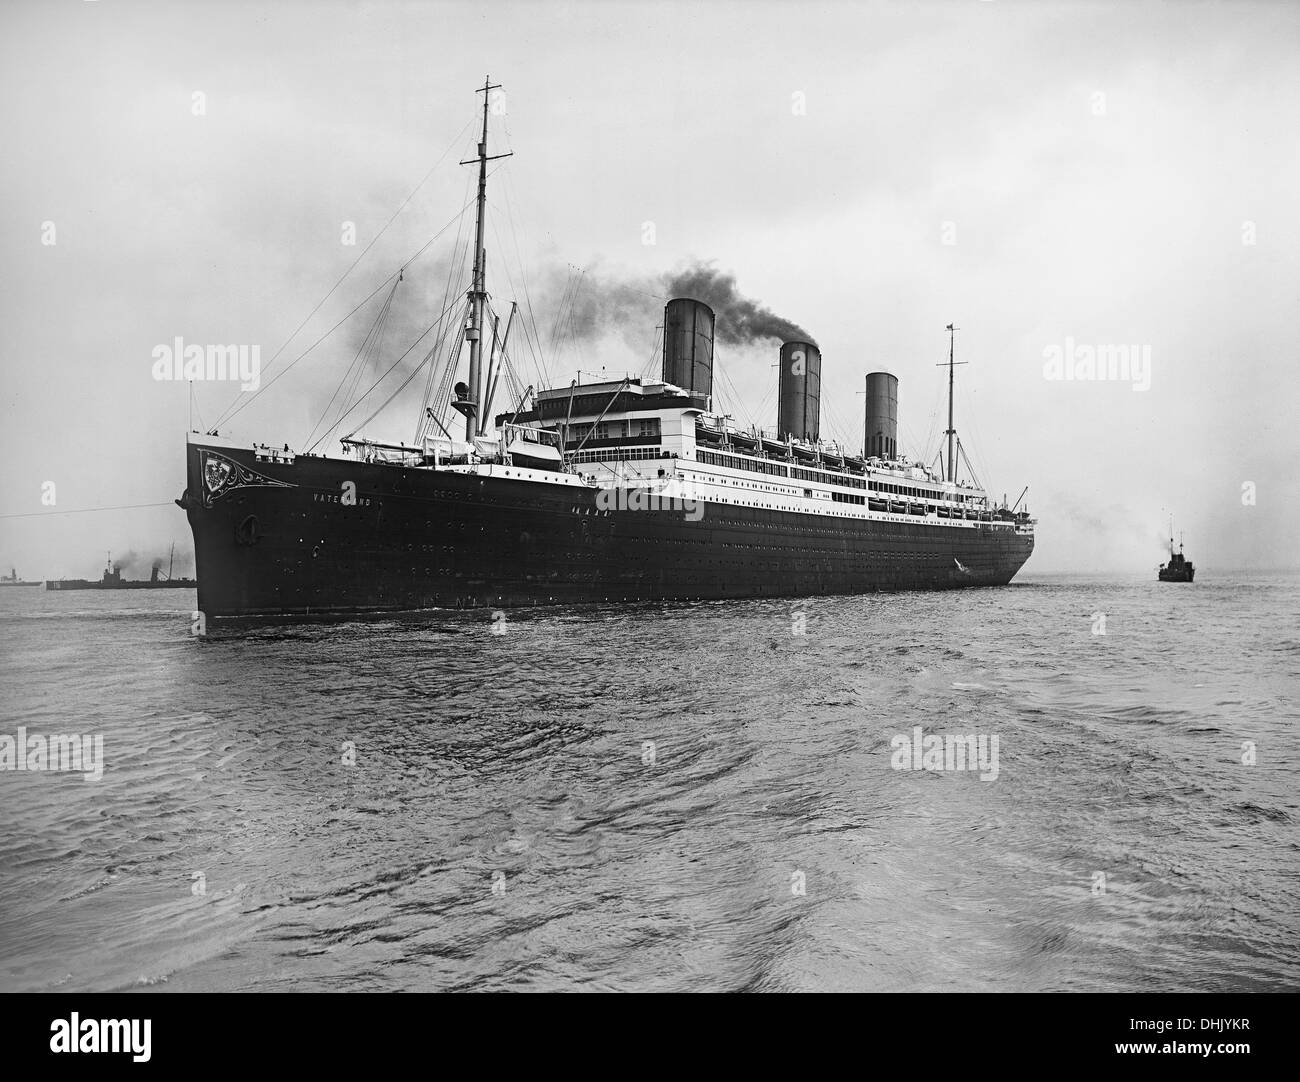 View of the ocean liner 'Vaterland' of Hapag Hamburg on the sea, Blohm und Voss Hamburg, shipyard, 1913, photograph taken in 1914. The image was taken by the German photographer Oswald Lübeck, one of the earliest representatives of travel photography and ship photography aboard passenger ships. Photo: Deutsche Fotothek/Oswald Lübeck - Stock Image